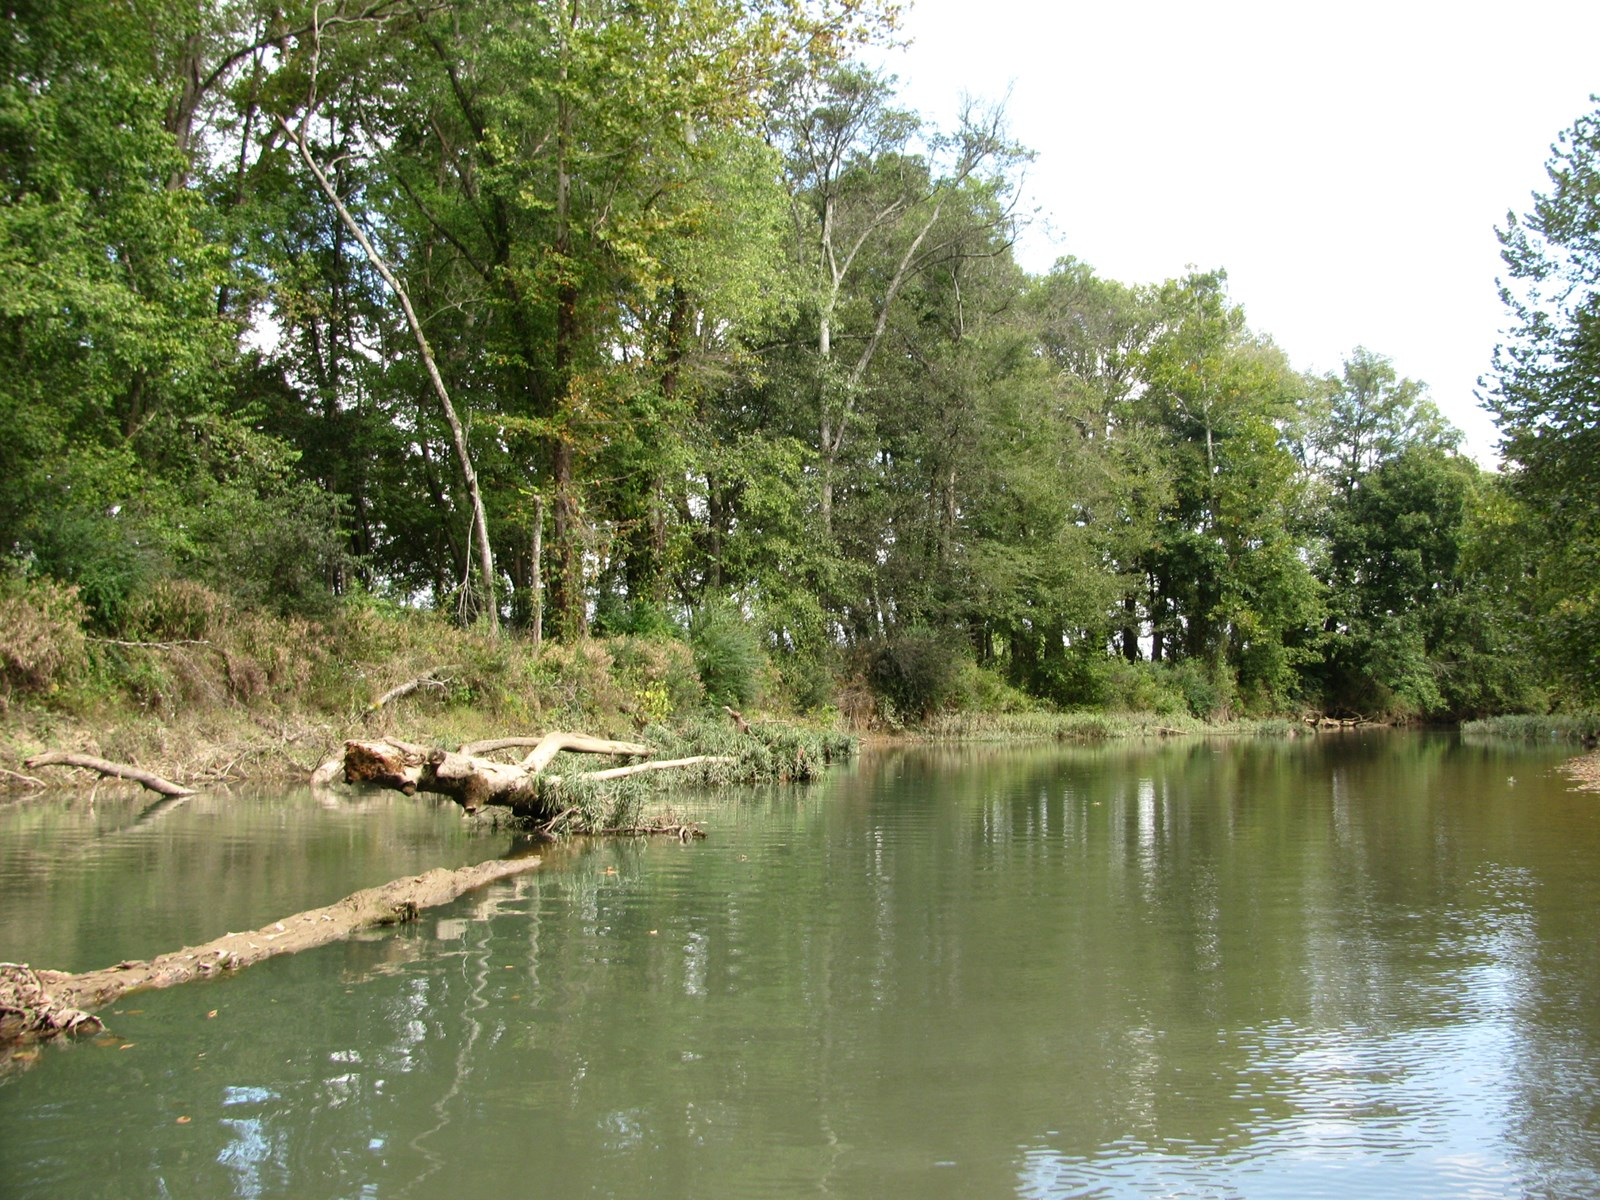 WATERFRONT RV LOT FOR SALE IN SAVANNAH, TN ON INDIAN CREEK